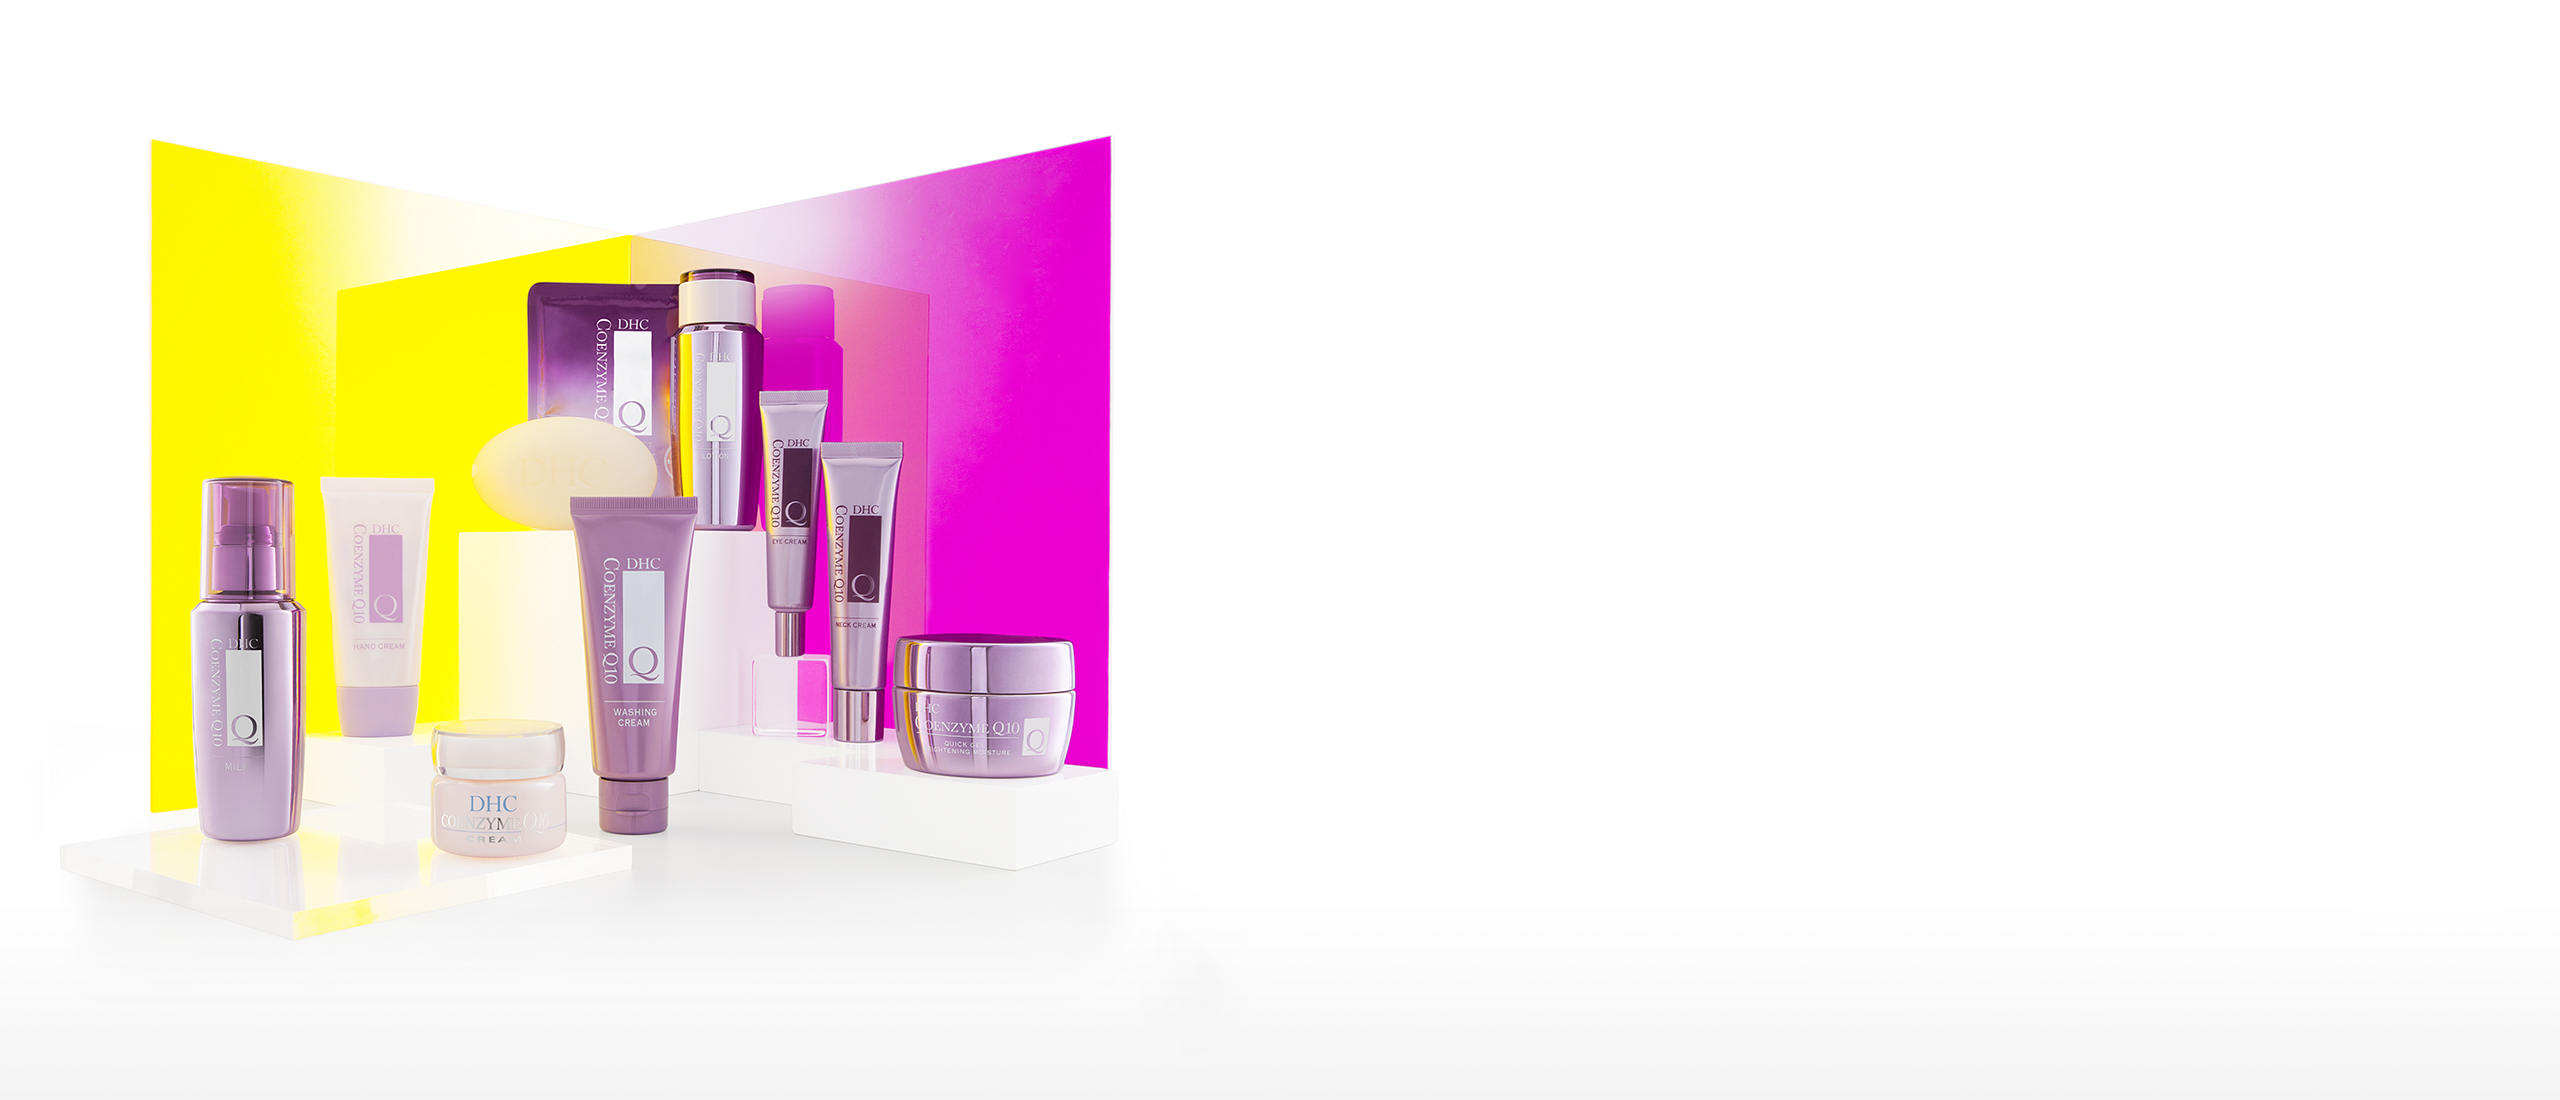 the Coenzyme Q10 Collection